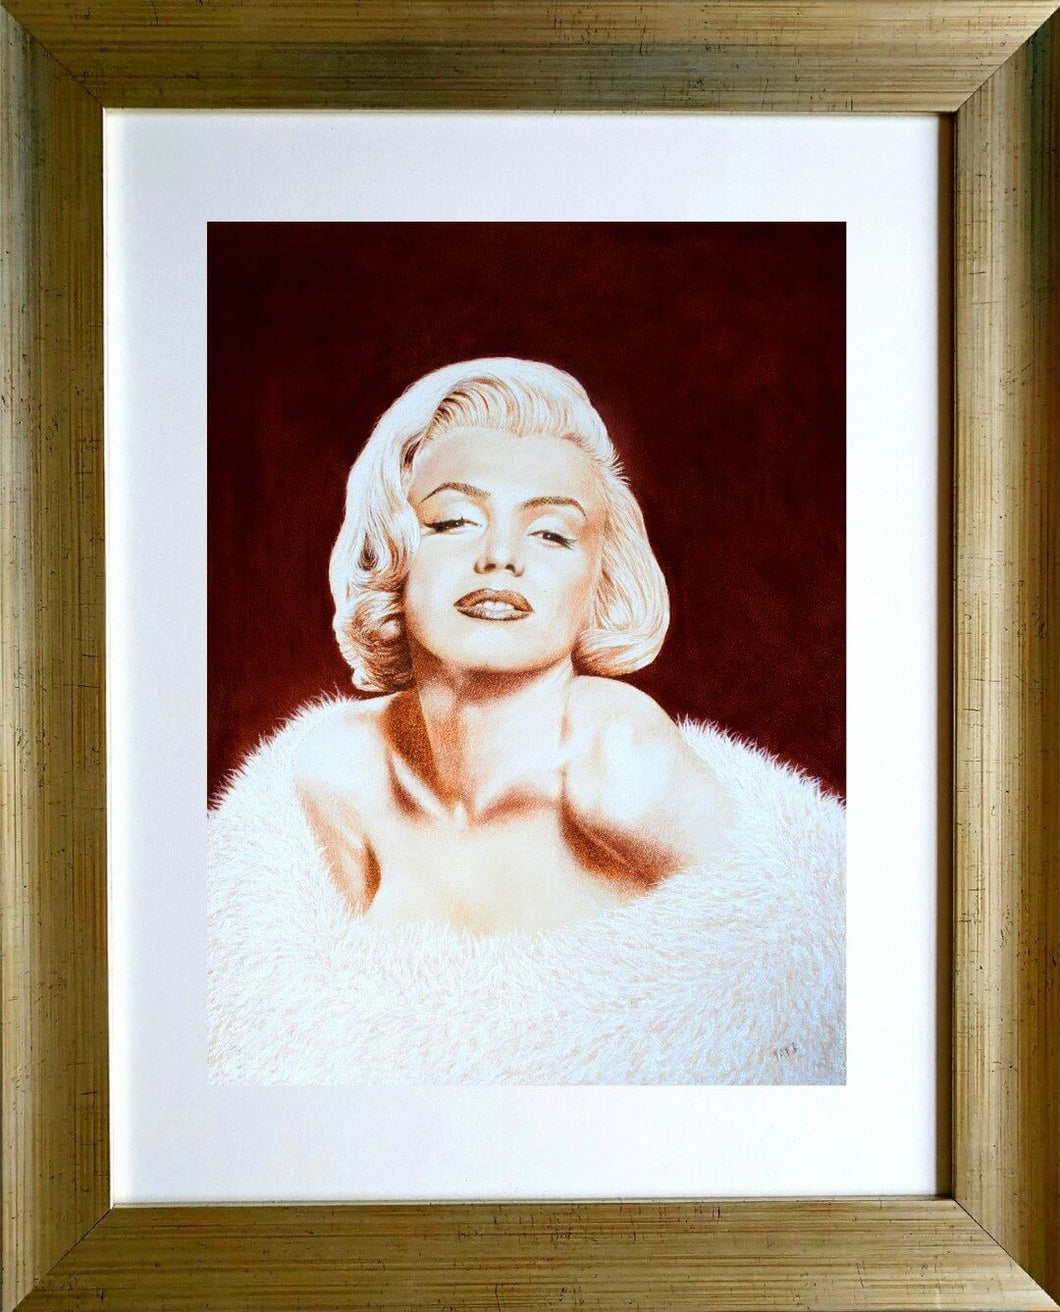 Norma Jean in sepia in frame. Pastel portrait of Marilyn Monroe Ivan Jones artist